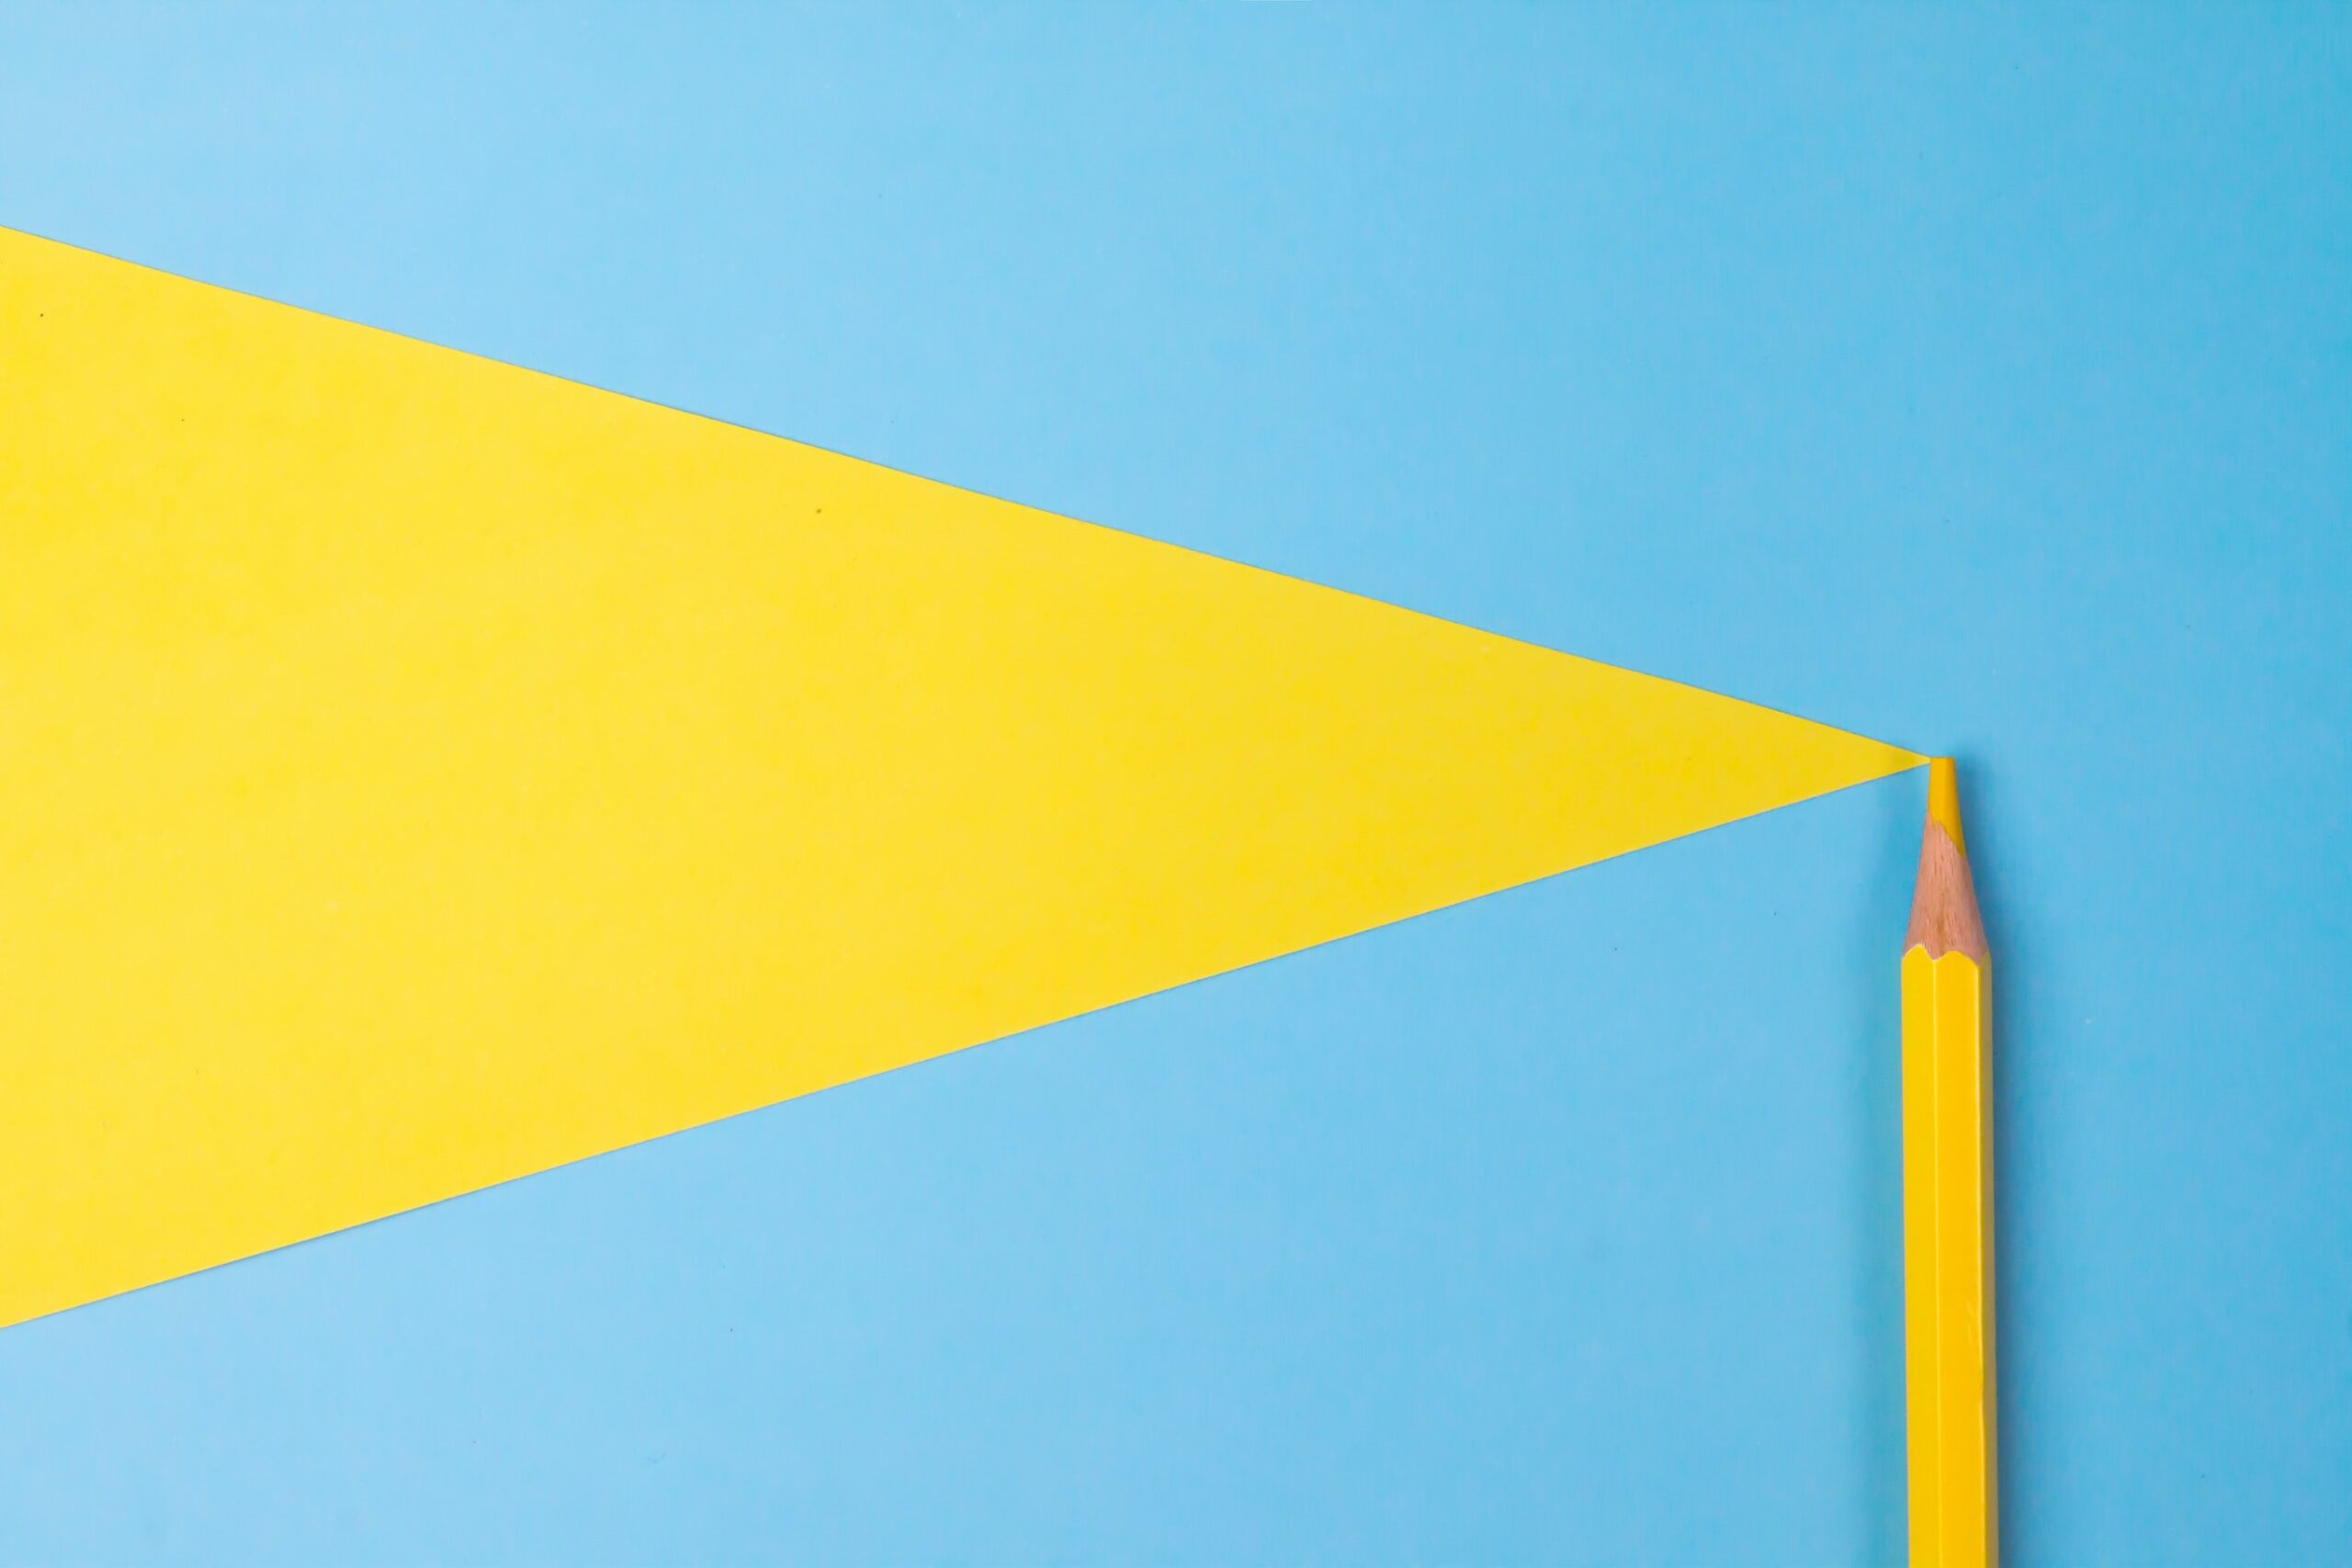 yellow pencil on a light blue background - Photo by Tamanna Rumee on Unsplash